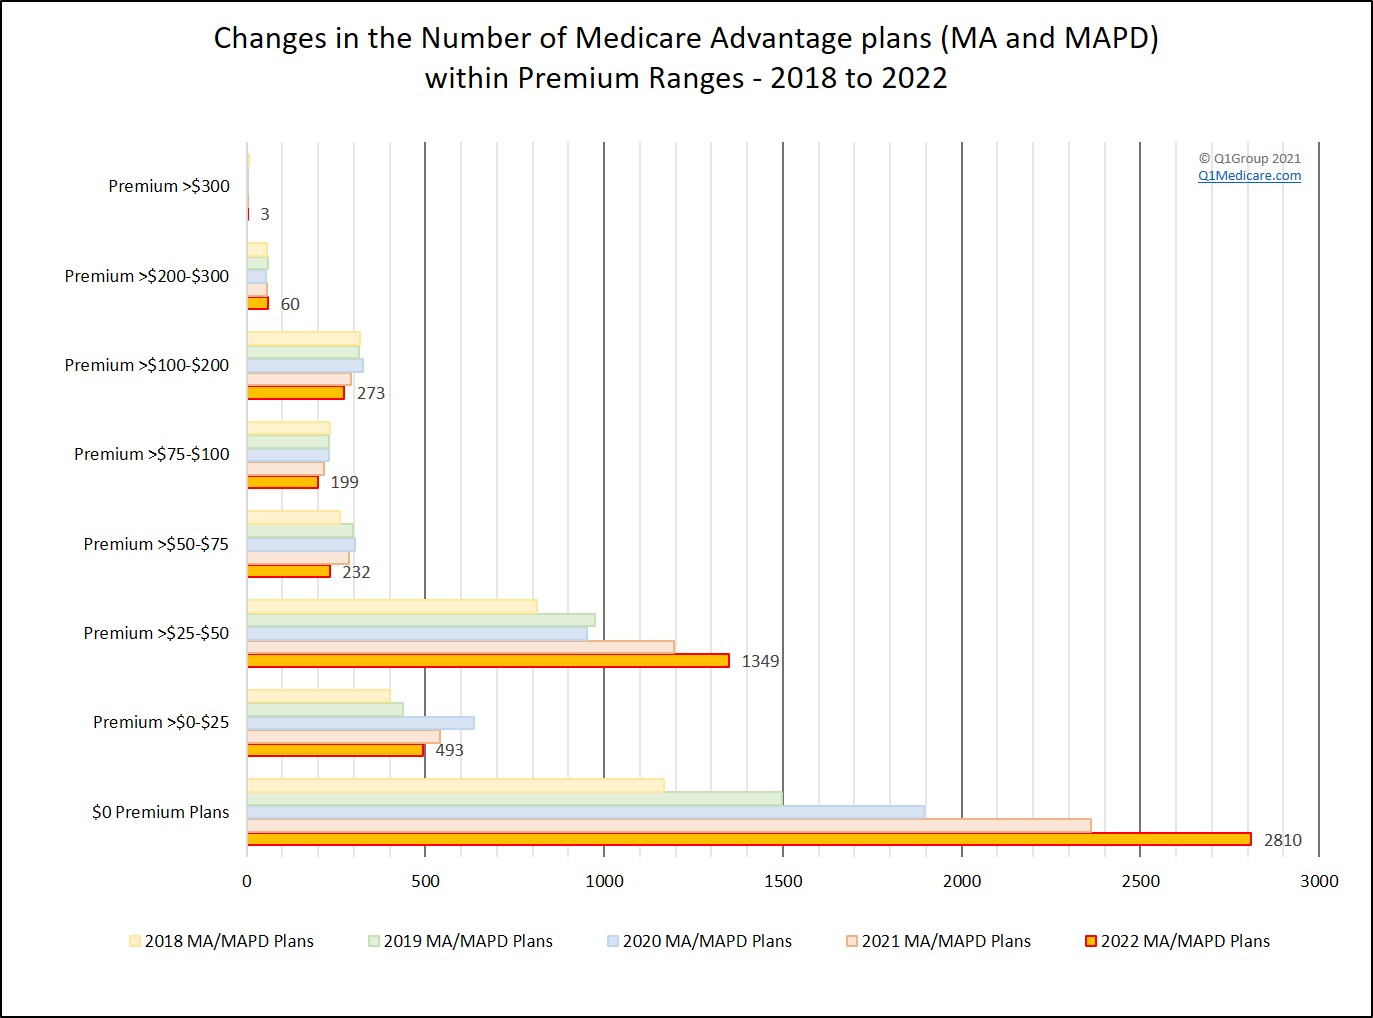 Changes in Medicare Advantage plan premiums from year to year